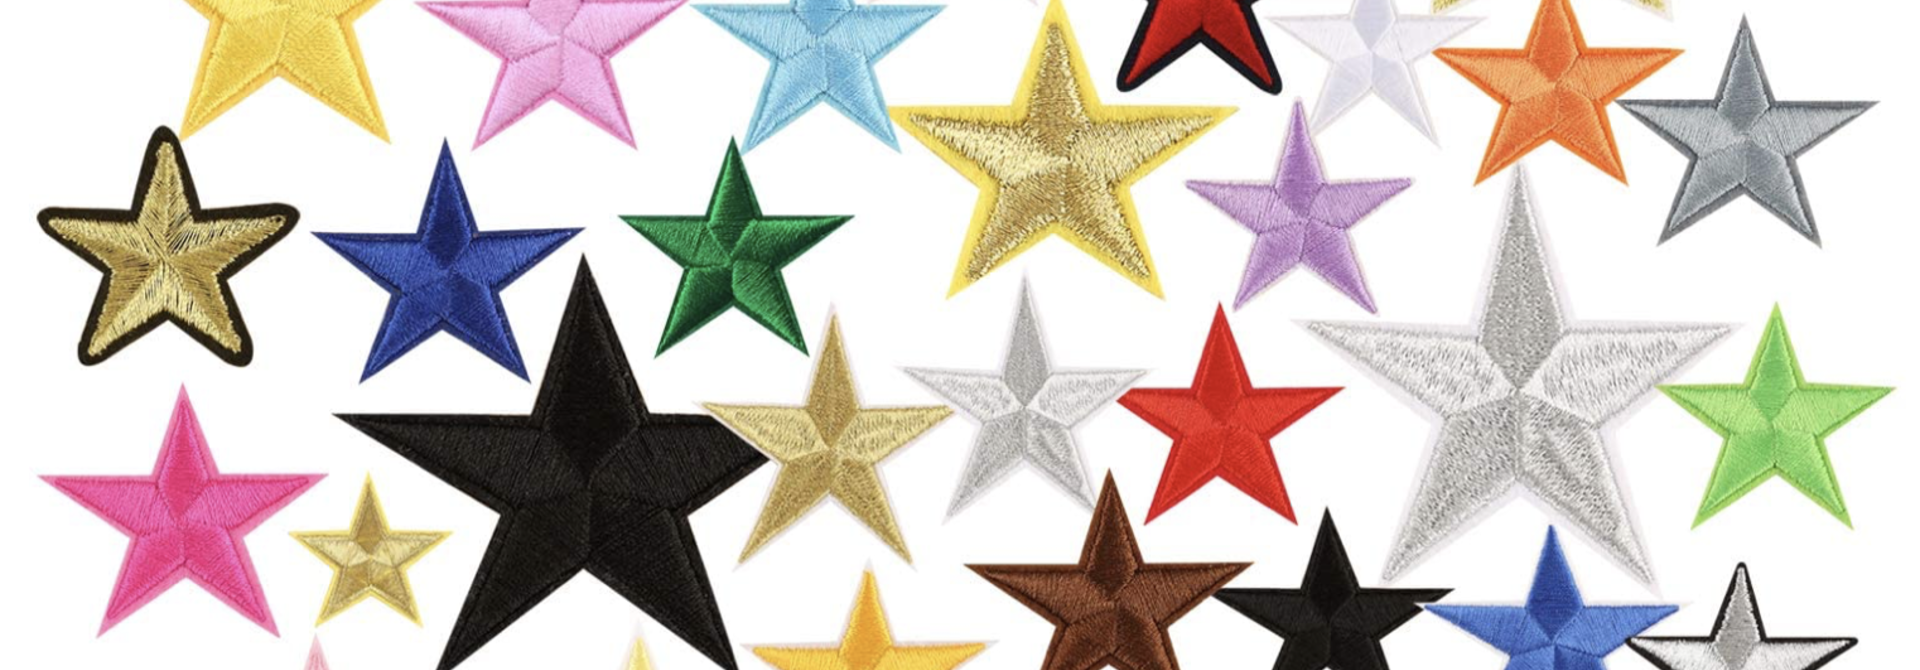 THE SHOP SMALL STARS PATCH